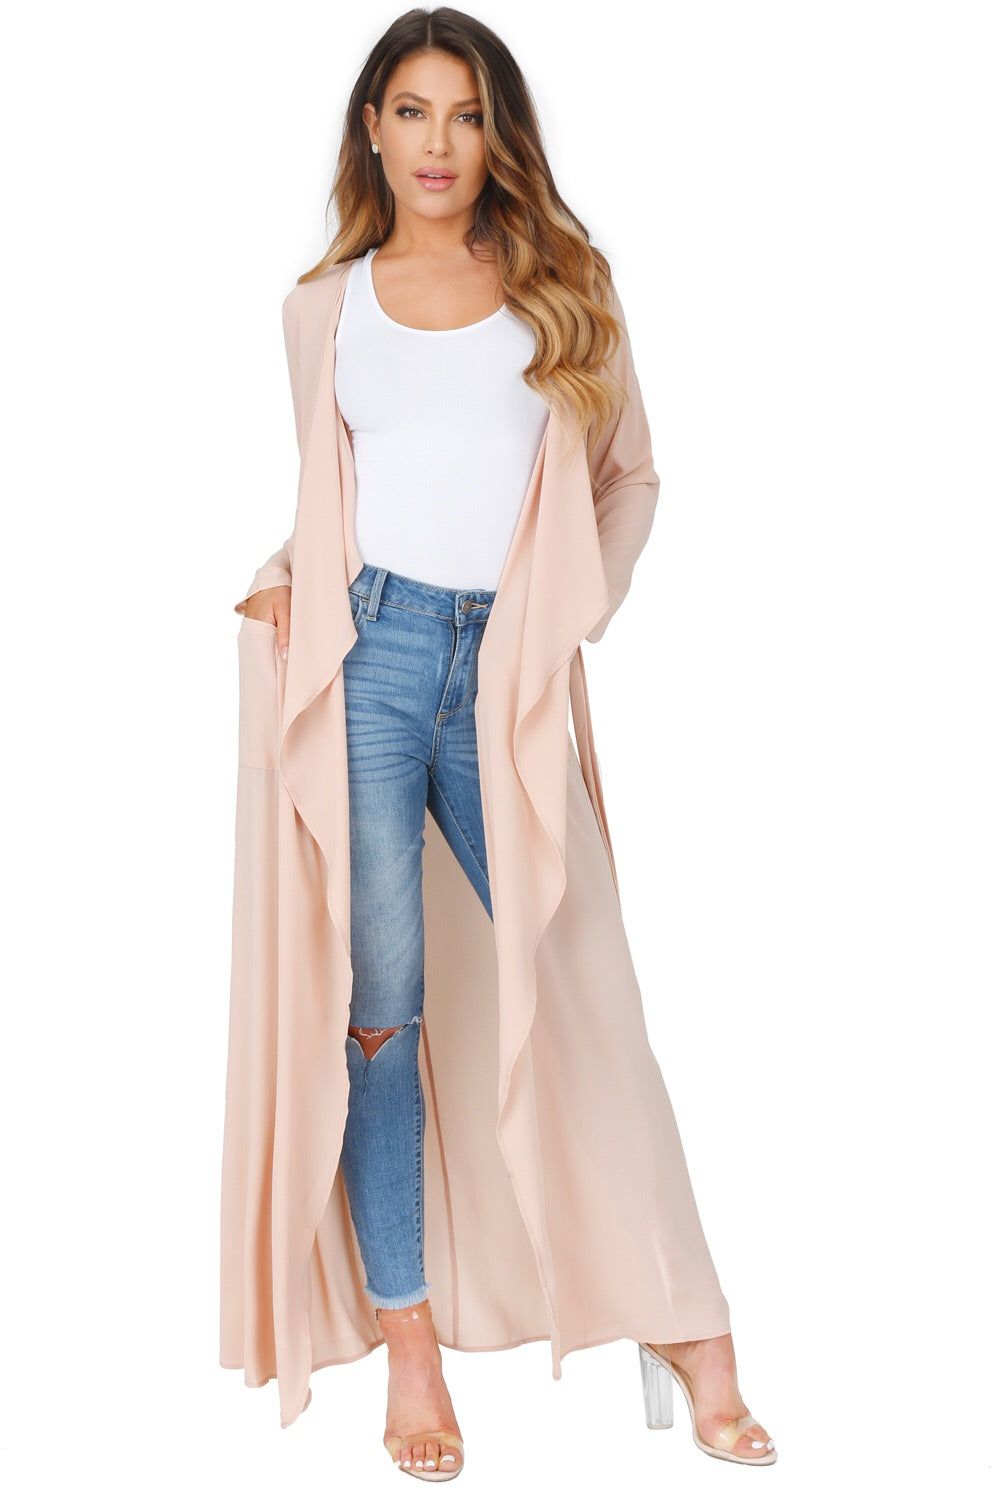 TAYLOR DUSTER CARDIGAN